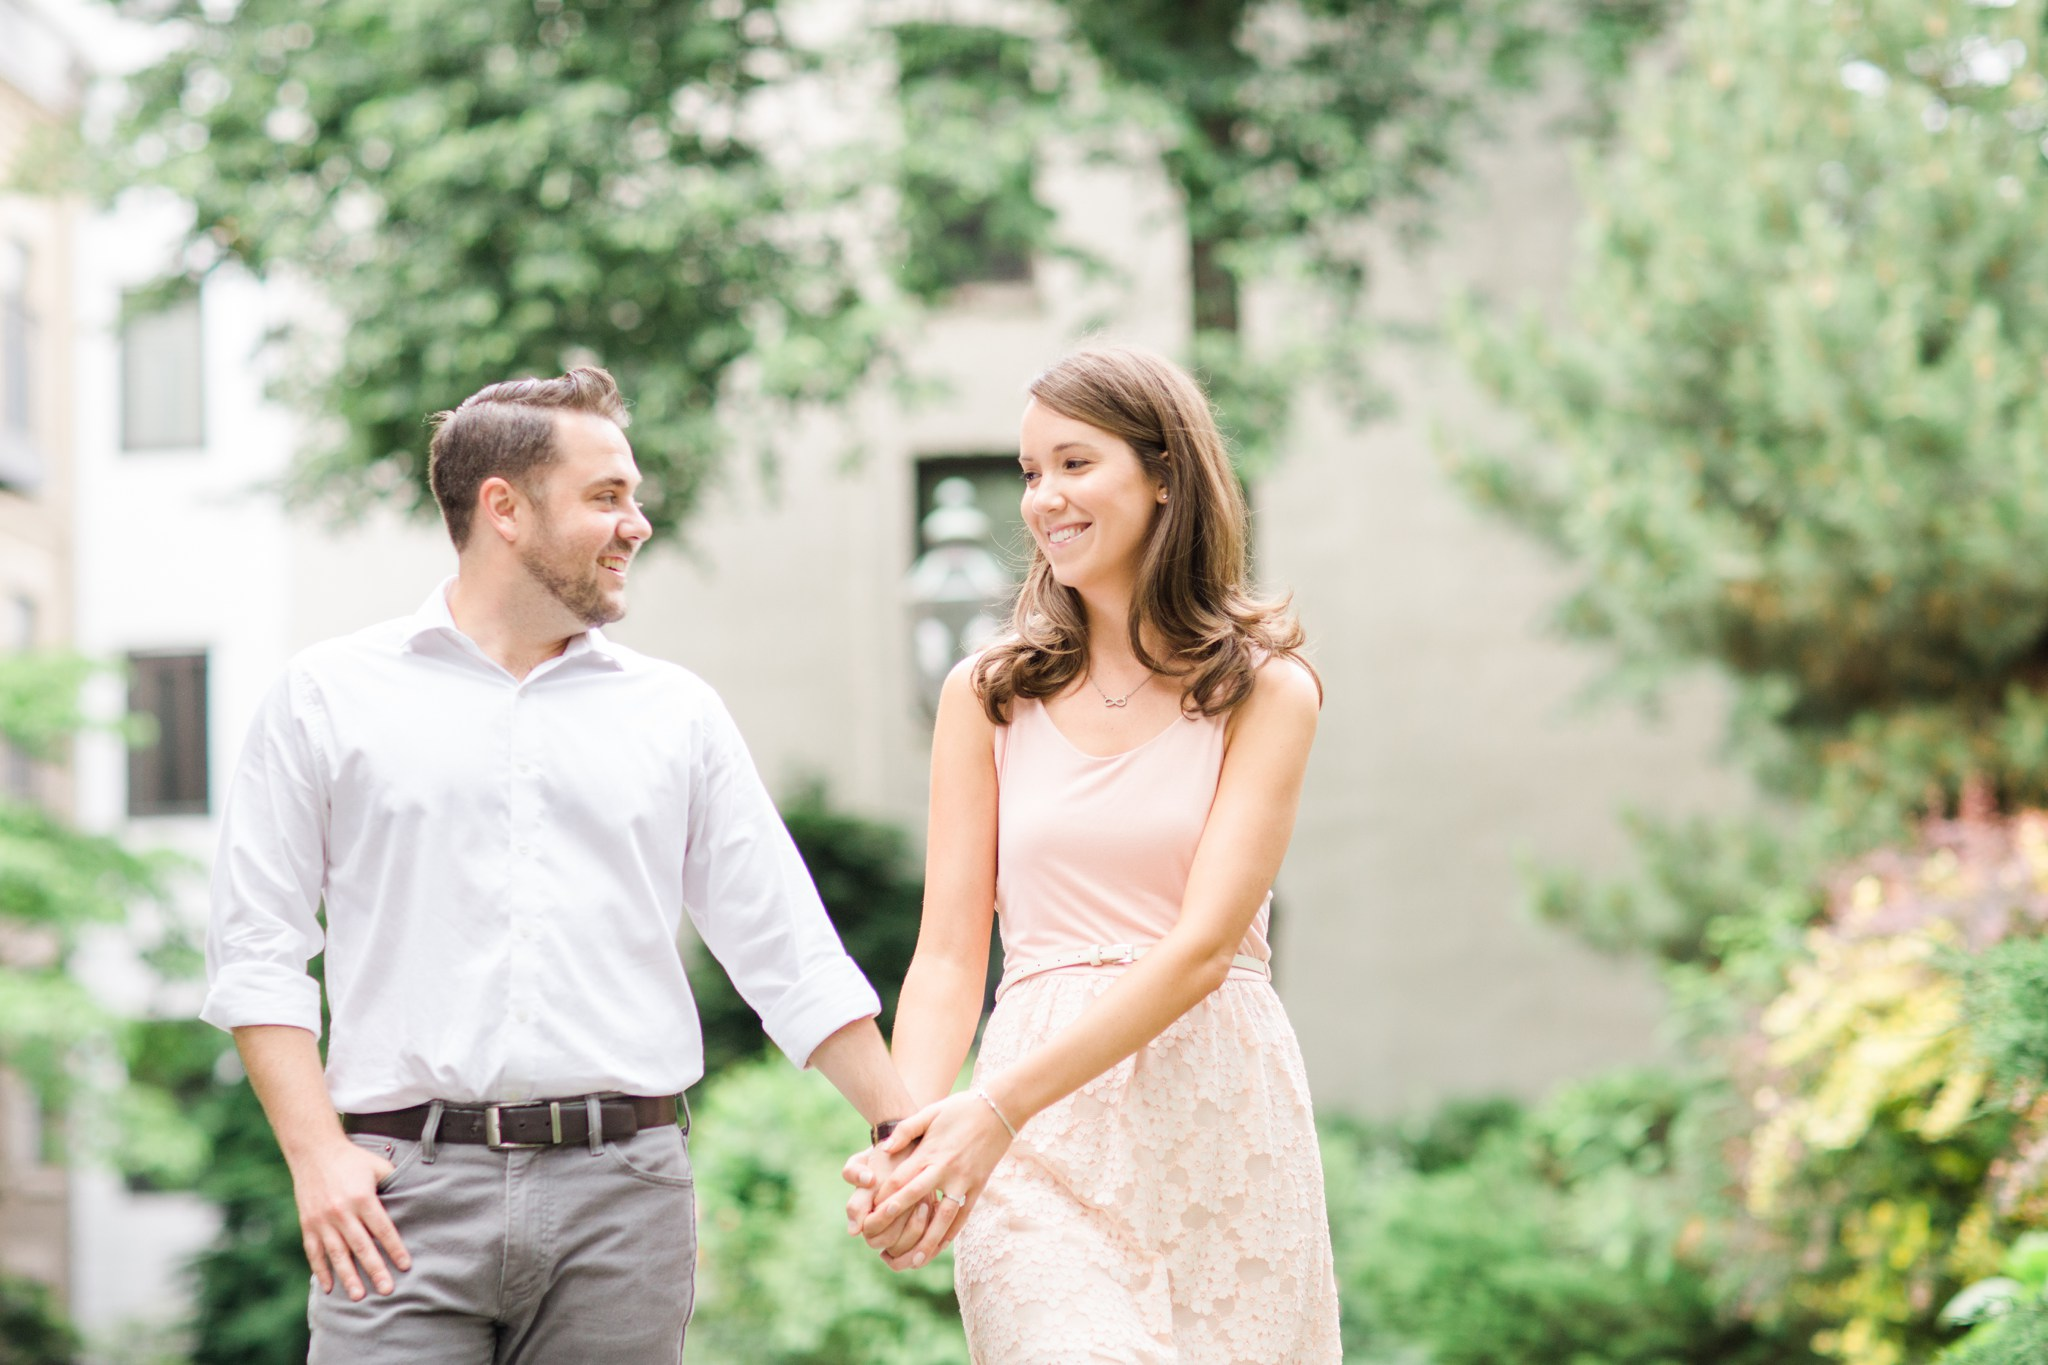 north_end_engagement_session_0011.JPG